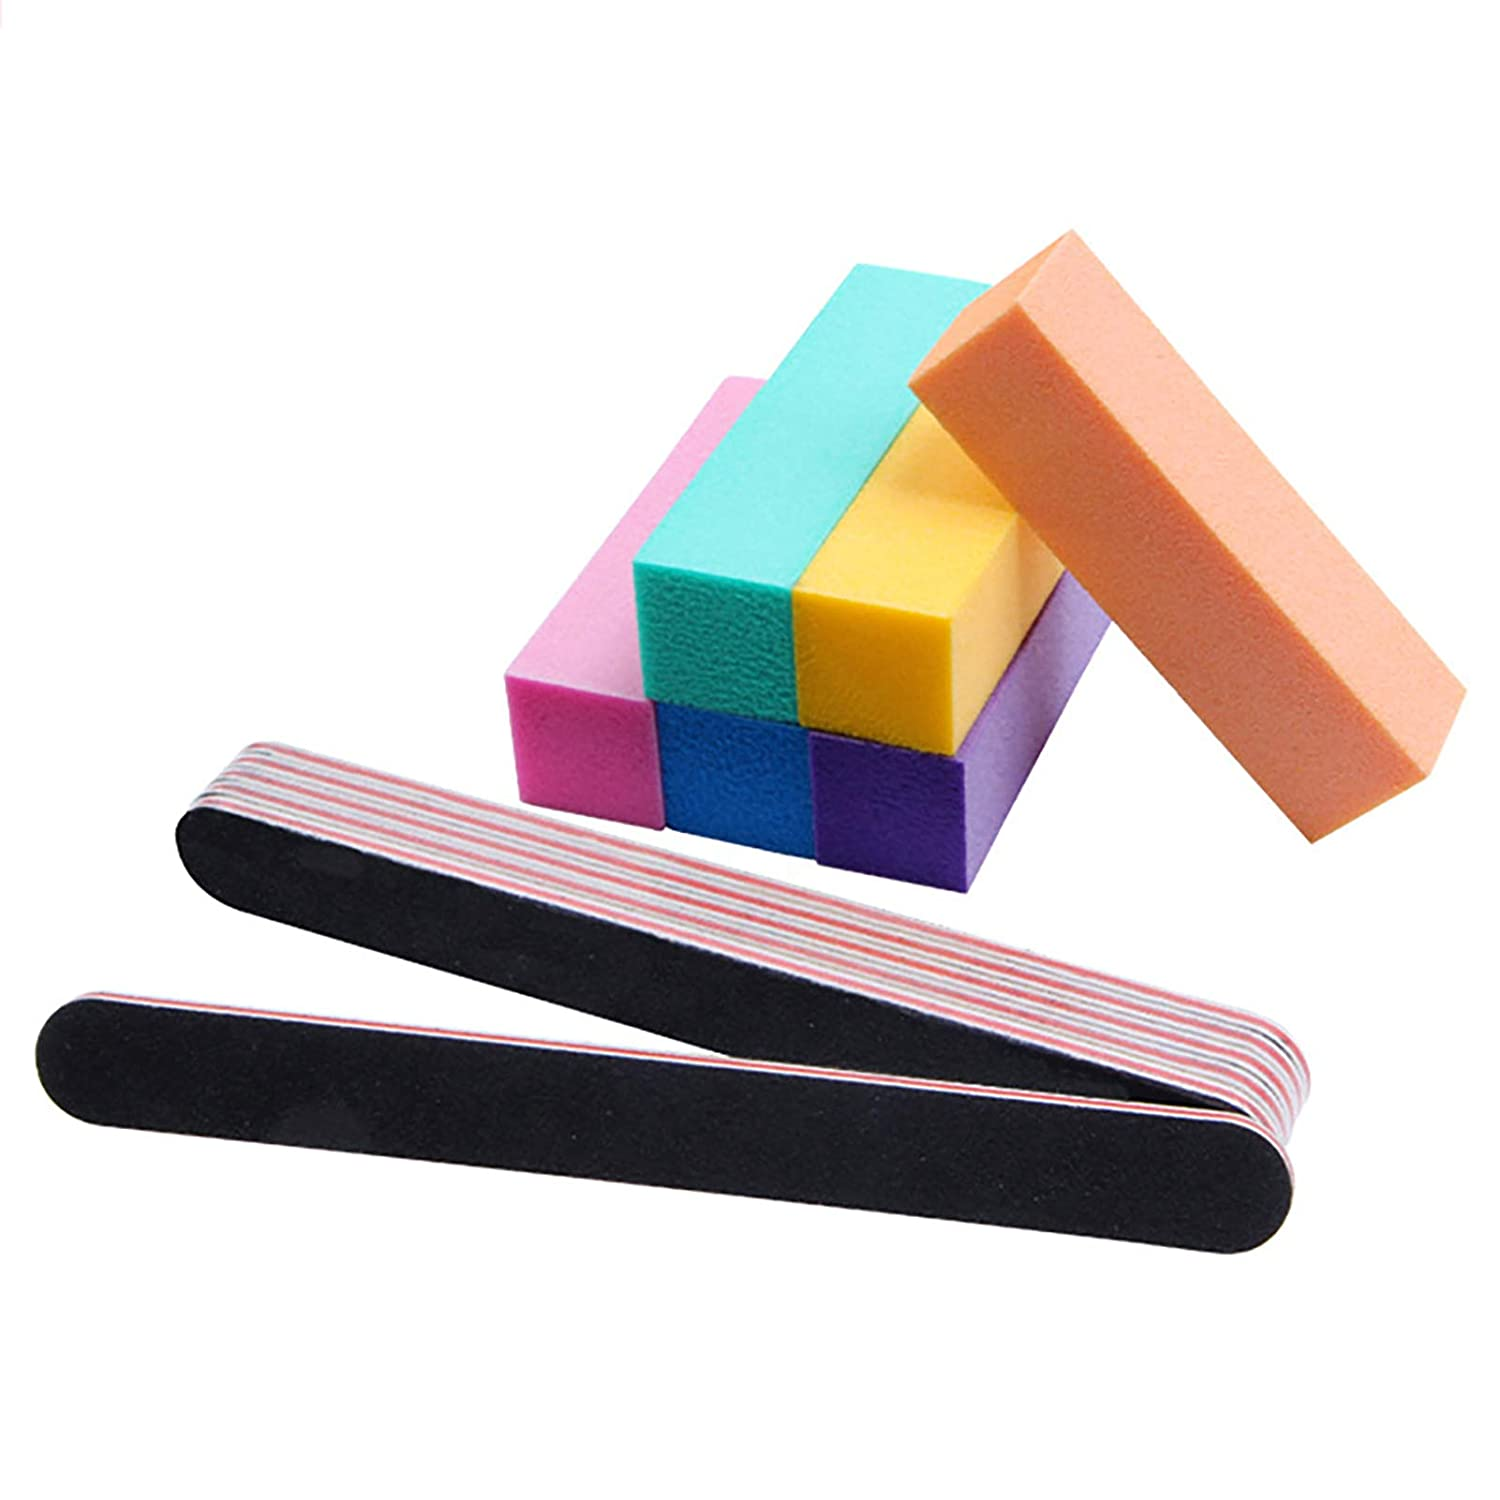 Nail Files Free Sale SALE% OFF Shipping New and Buffer Professional Tools Rectangul Kit Manicure